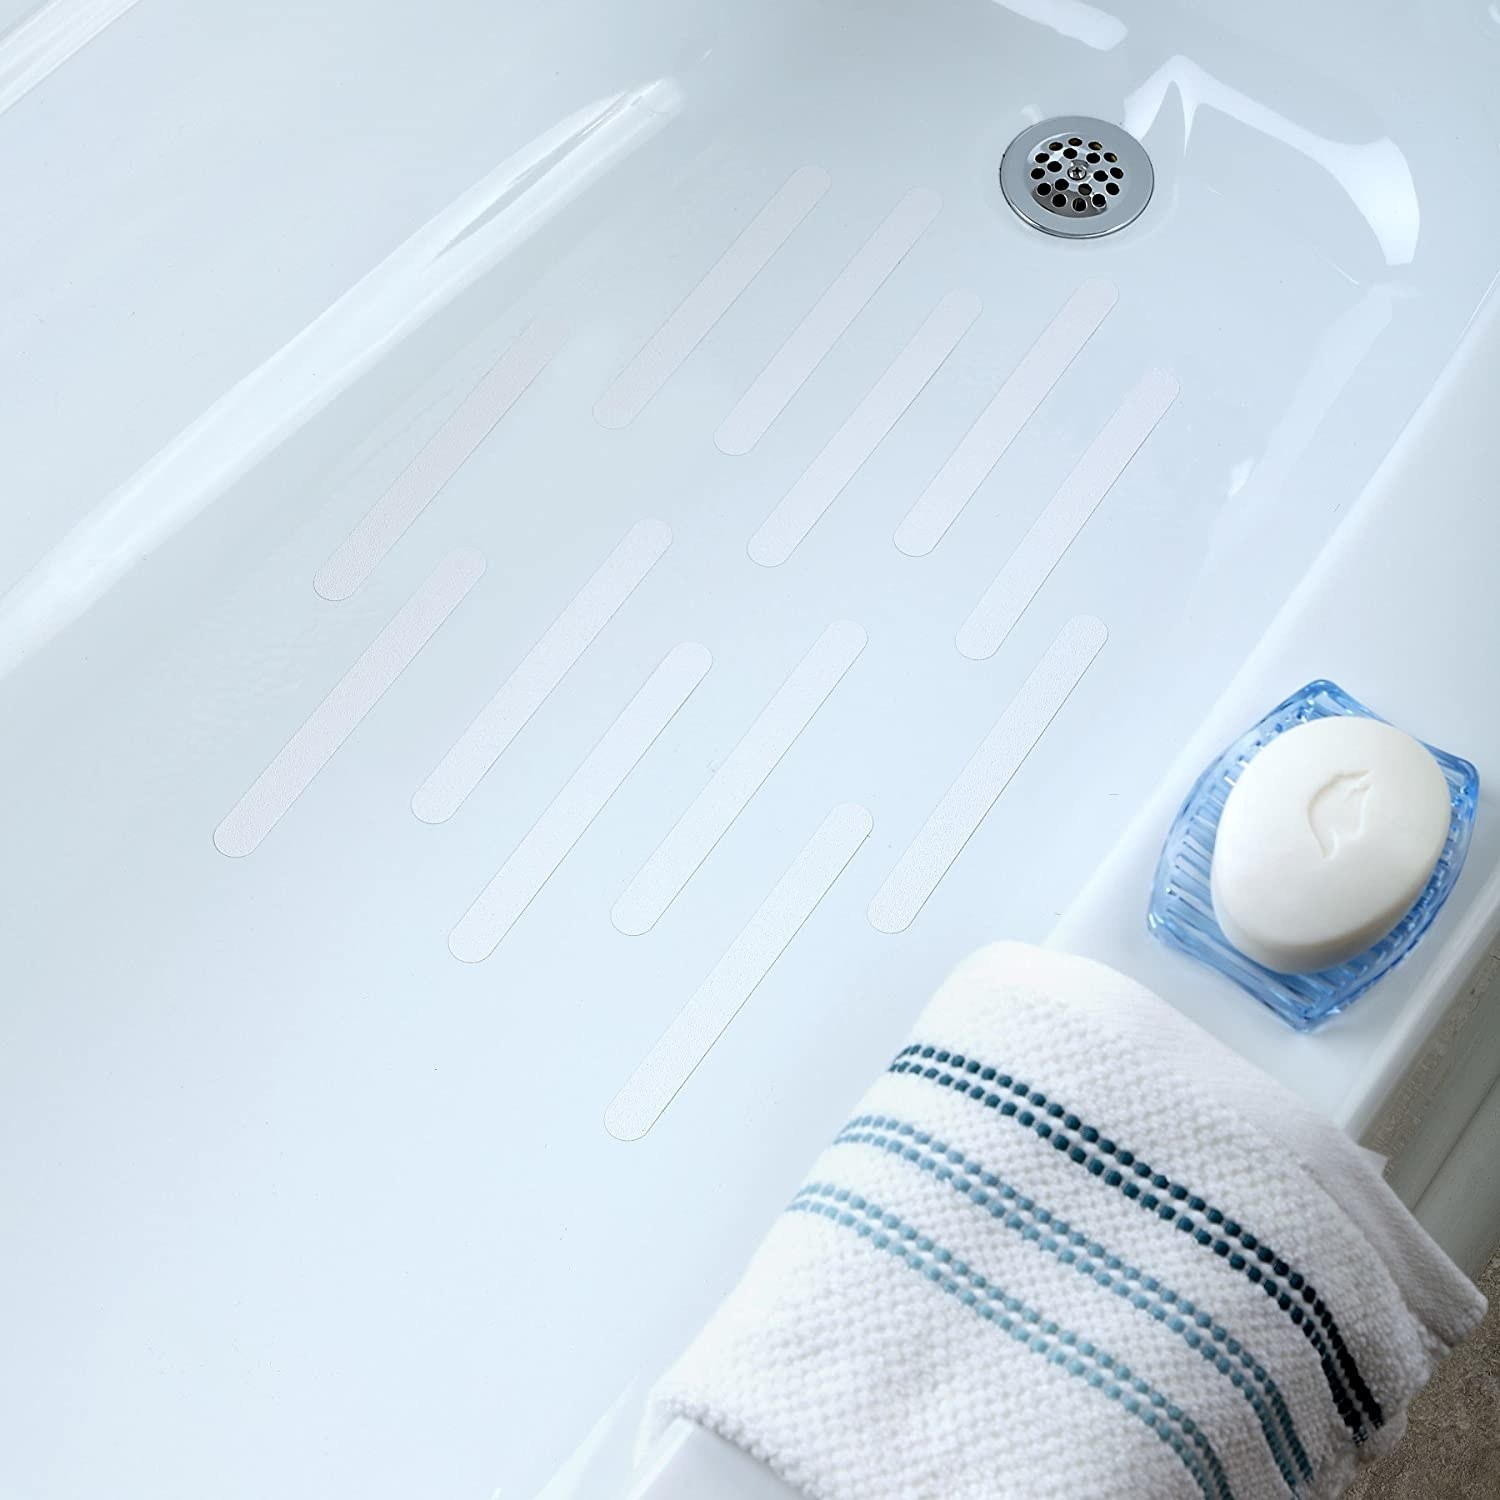 Twelve white lines placed horizontally in the tub to prevent slipping while standing in the bath